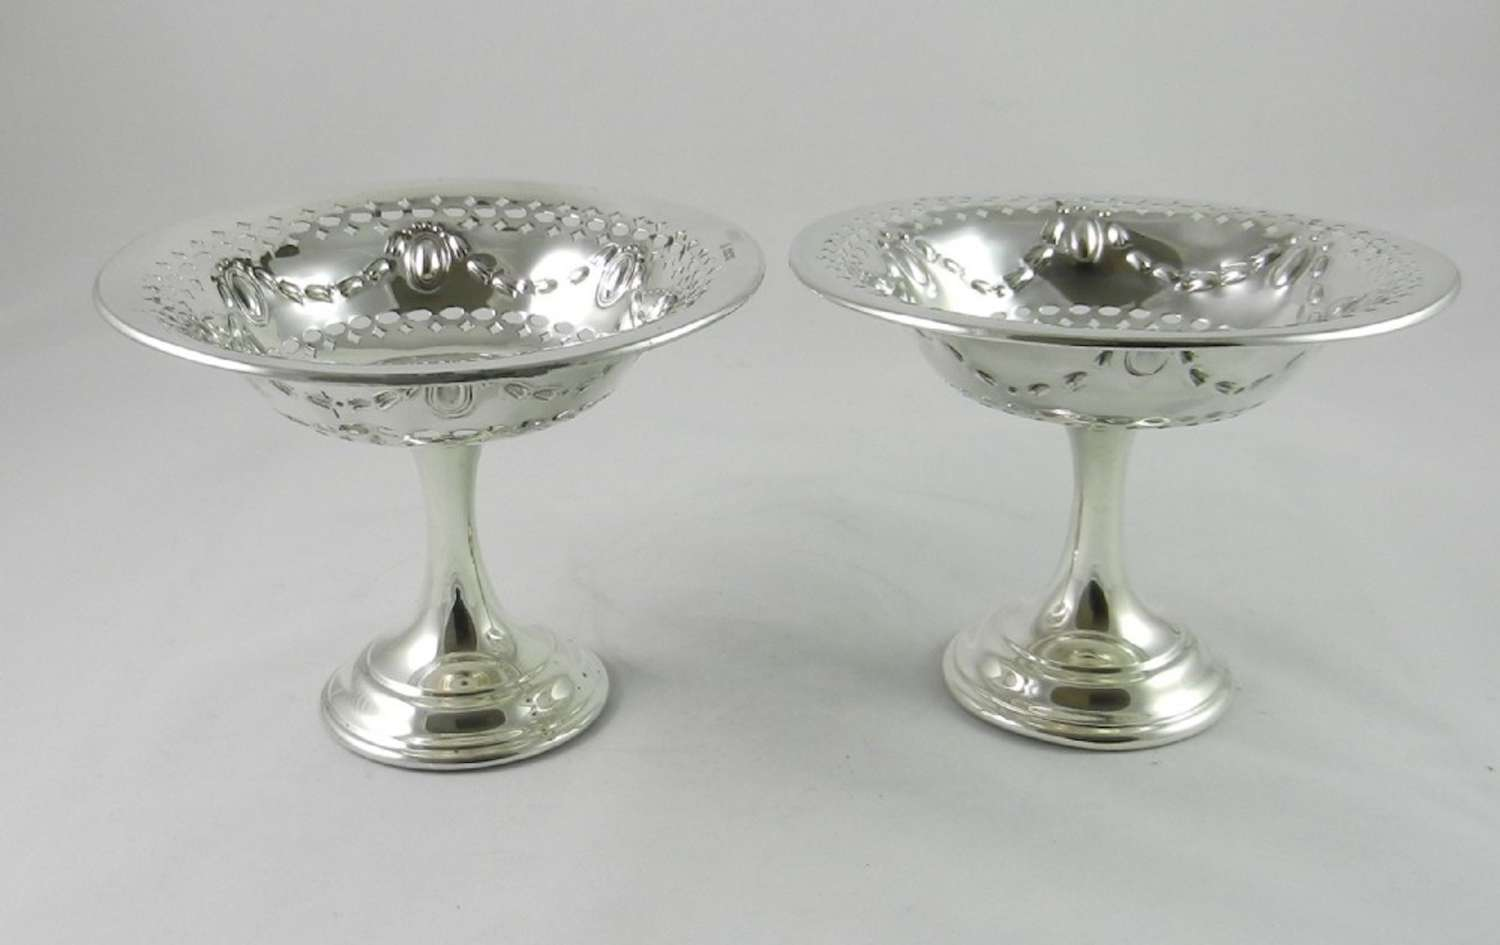 Antique Silver Sweetmeat Stands